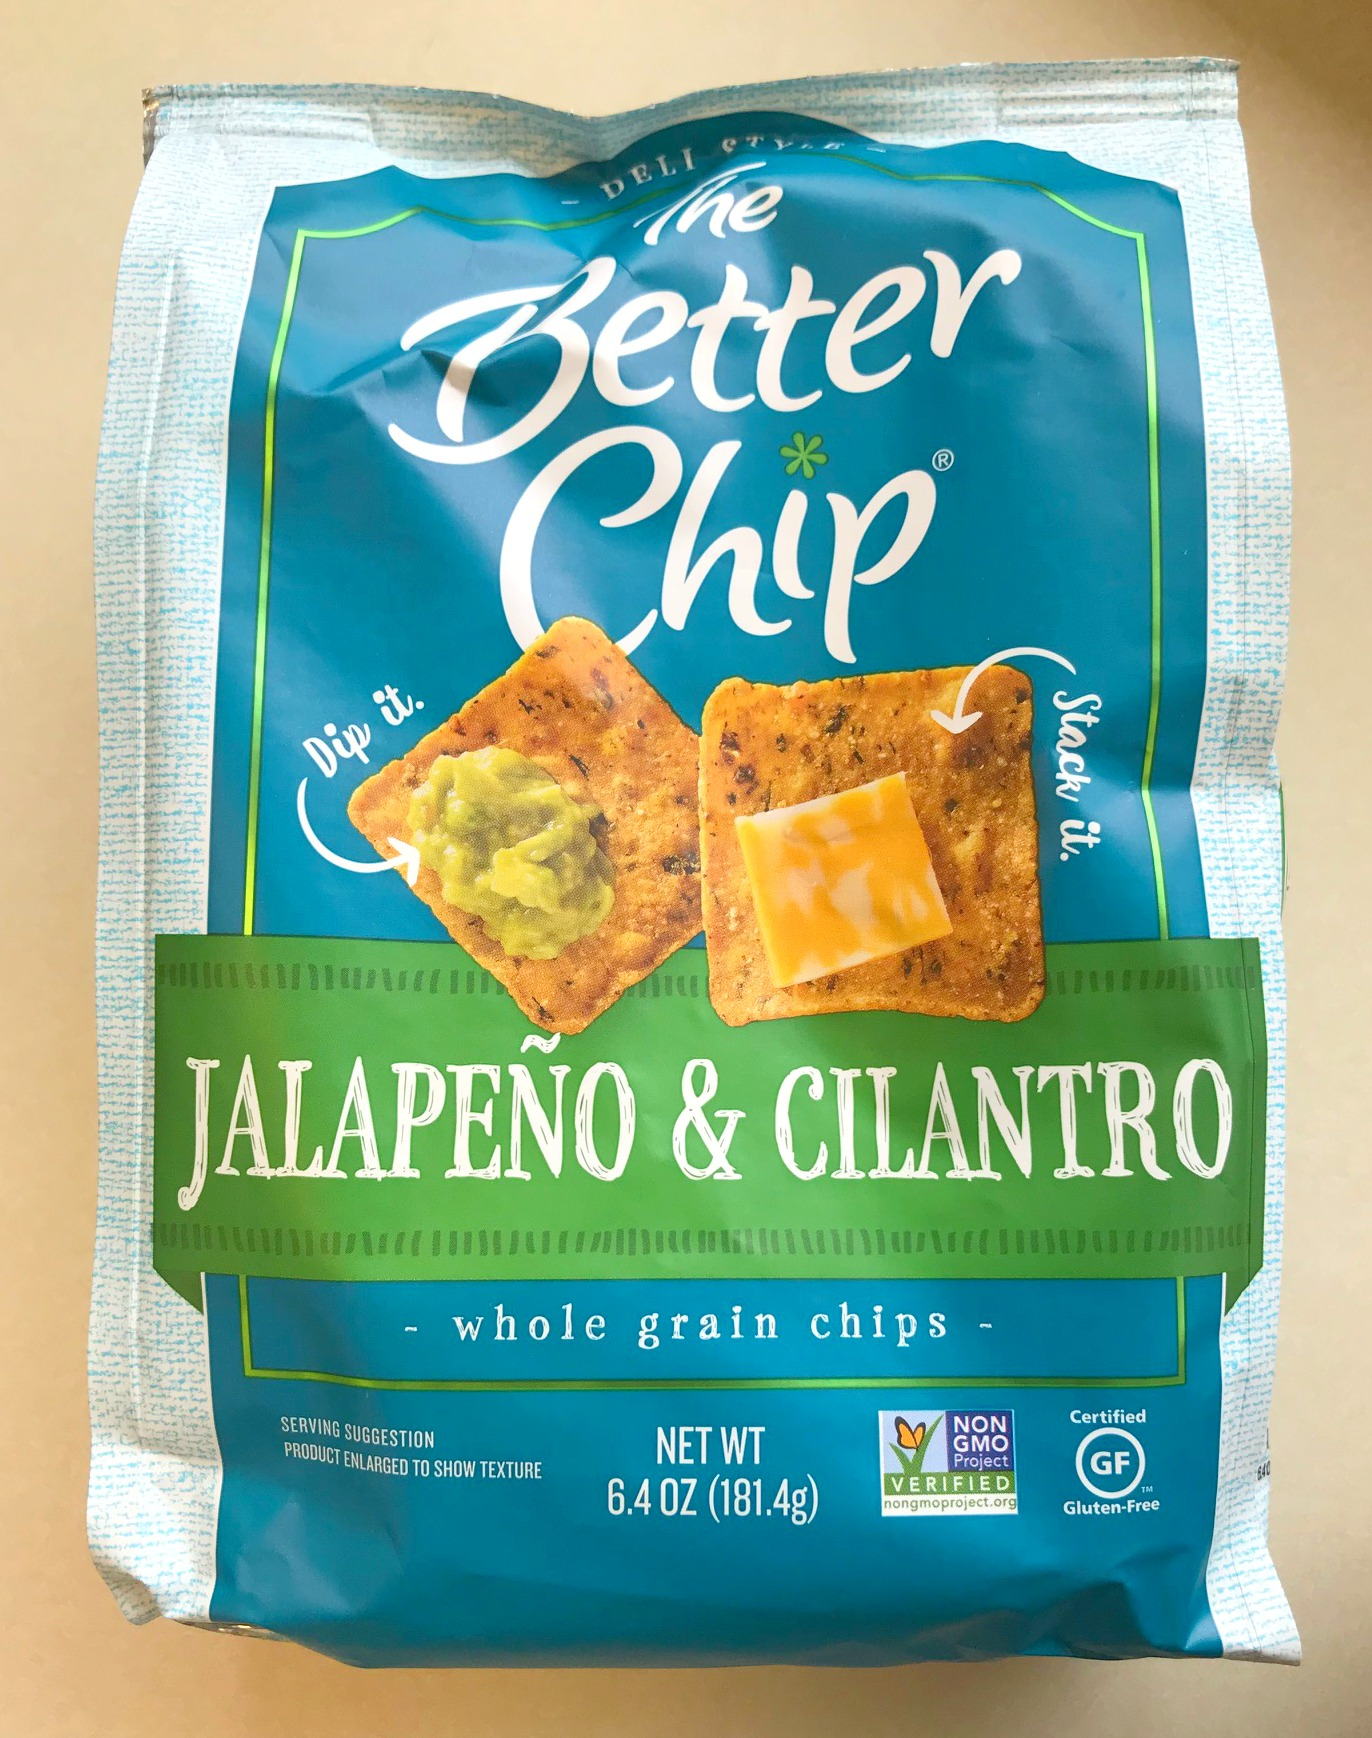 The Better Chip - Jalapeno & Cilantro